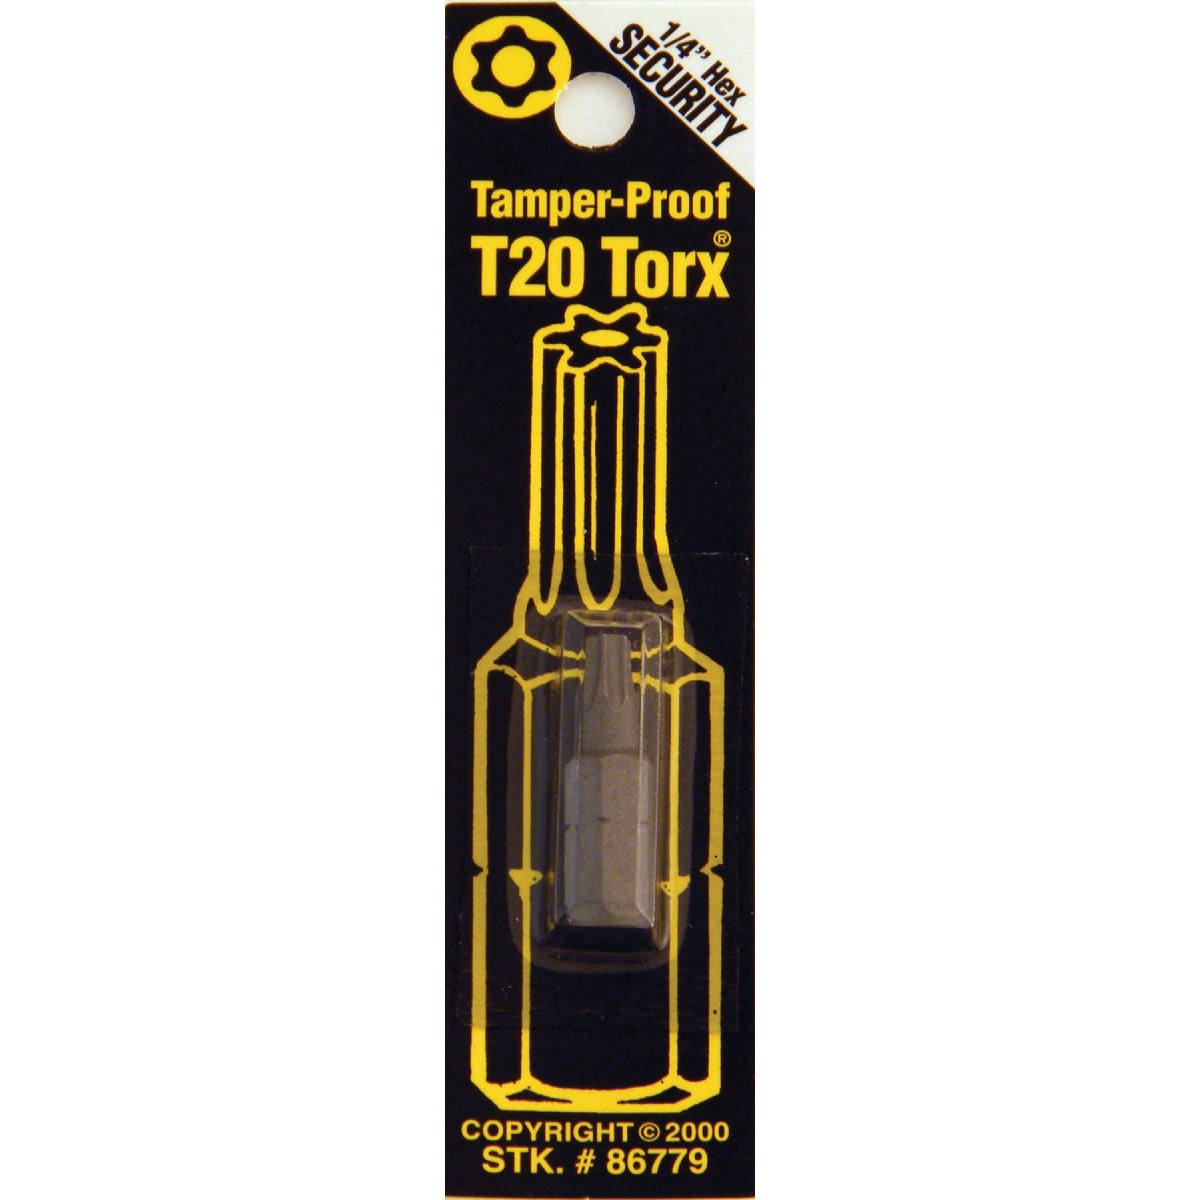 T20 TMPR SECURITY BIT - 86779 by Bwt Inc